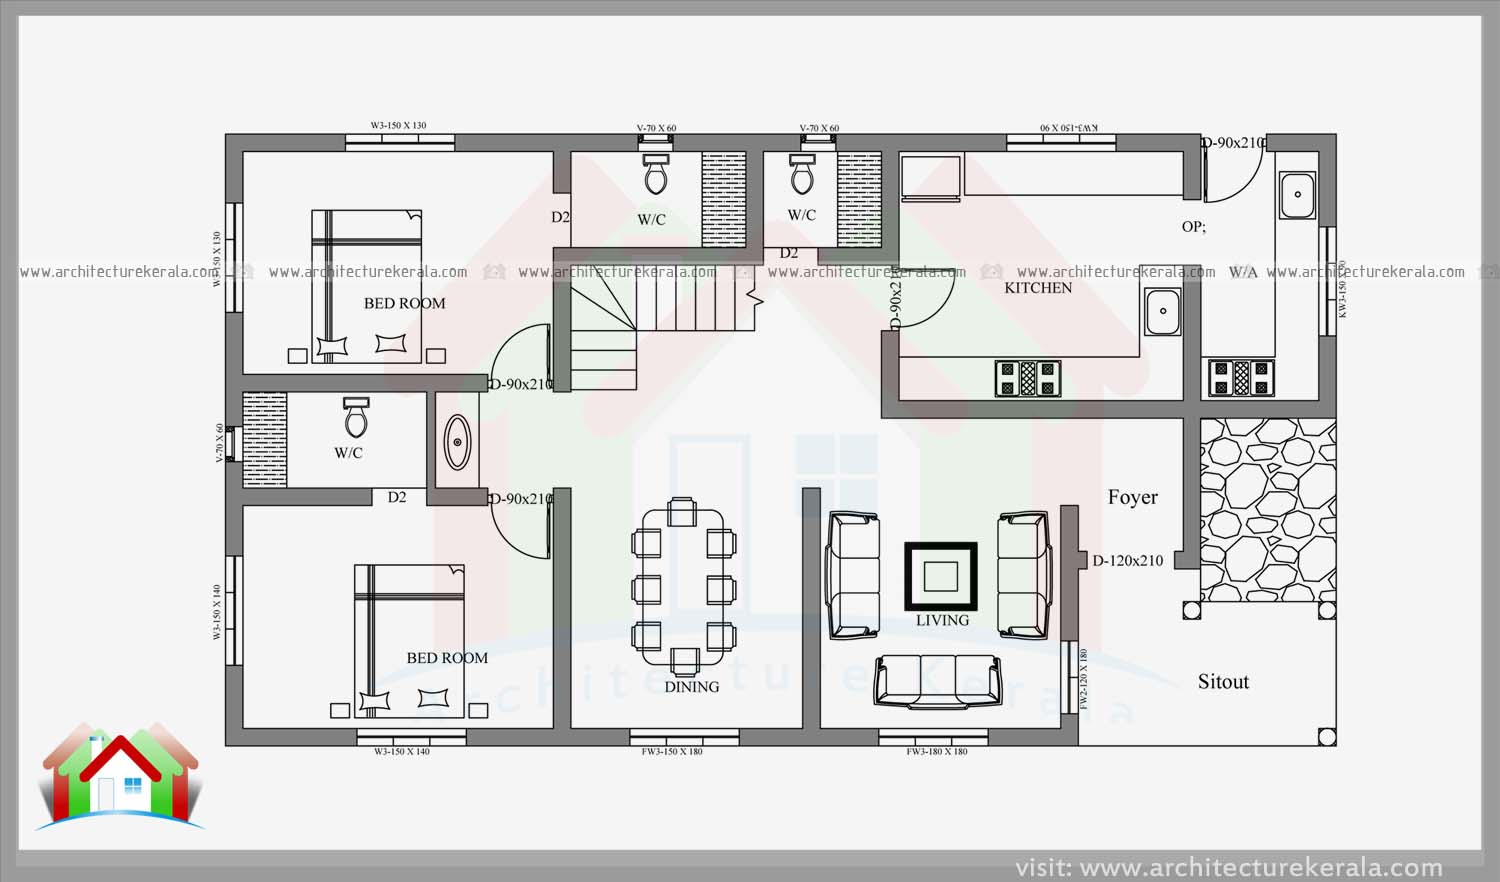 Double storied four bedroom house plan and elevation architecture kerala - Four bed room house plans ...